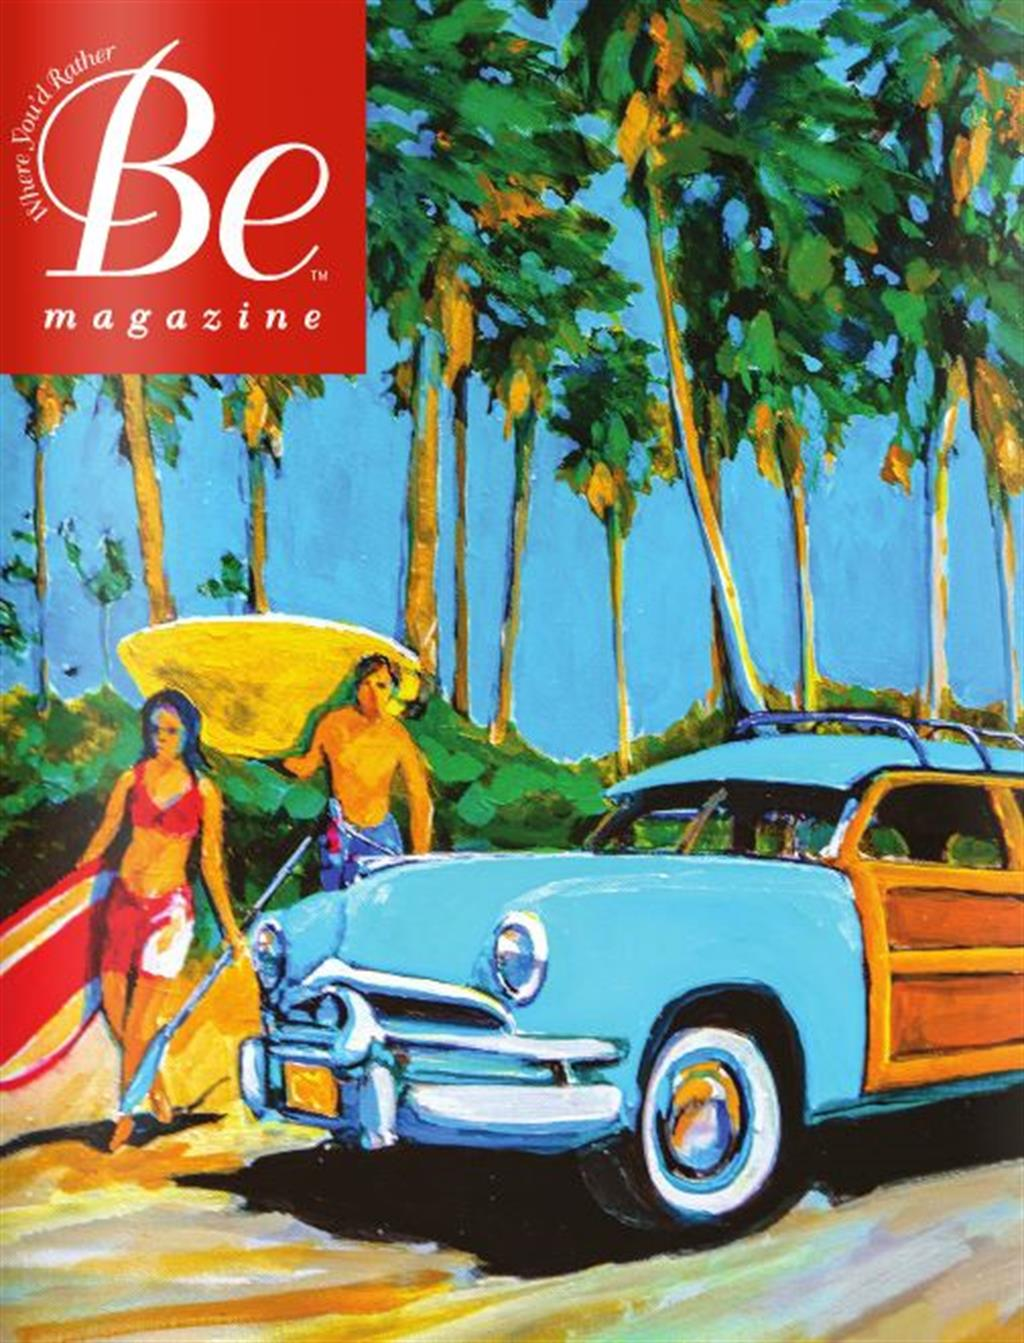 2nd Edition of Where Youd Rather Be Magazine Features Best of Destin and South Walton